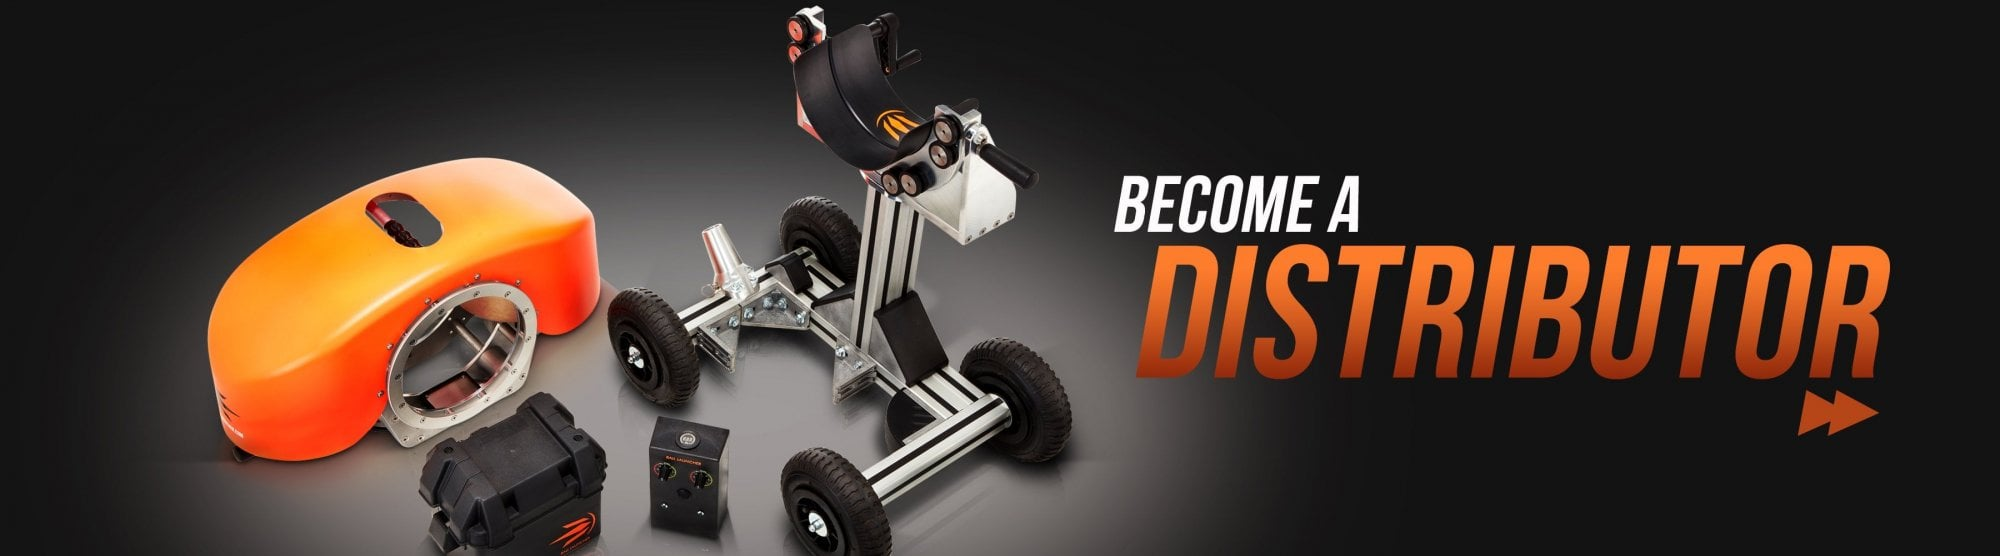 Become a Distributor of Ball Launcher d4568f7eed